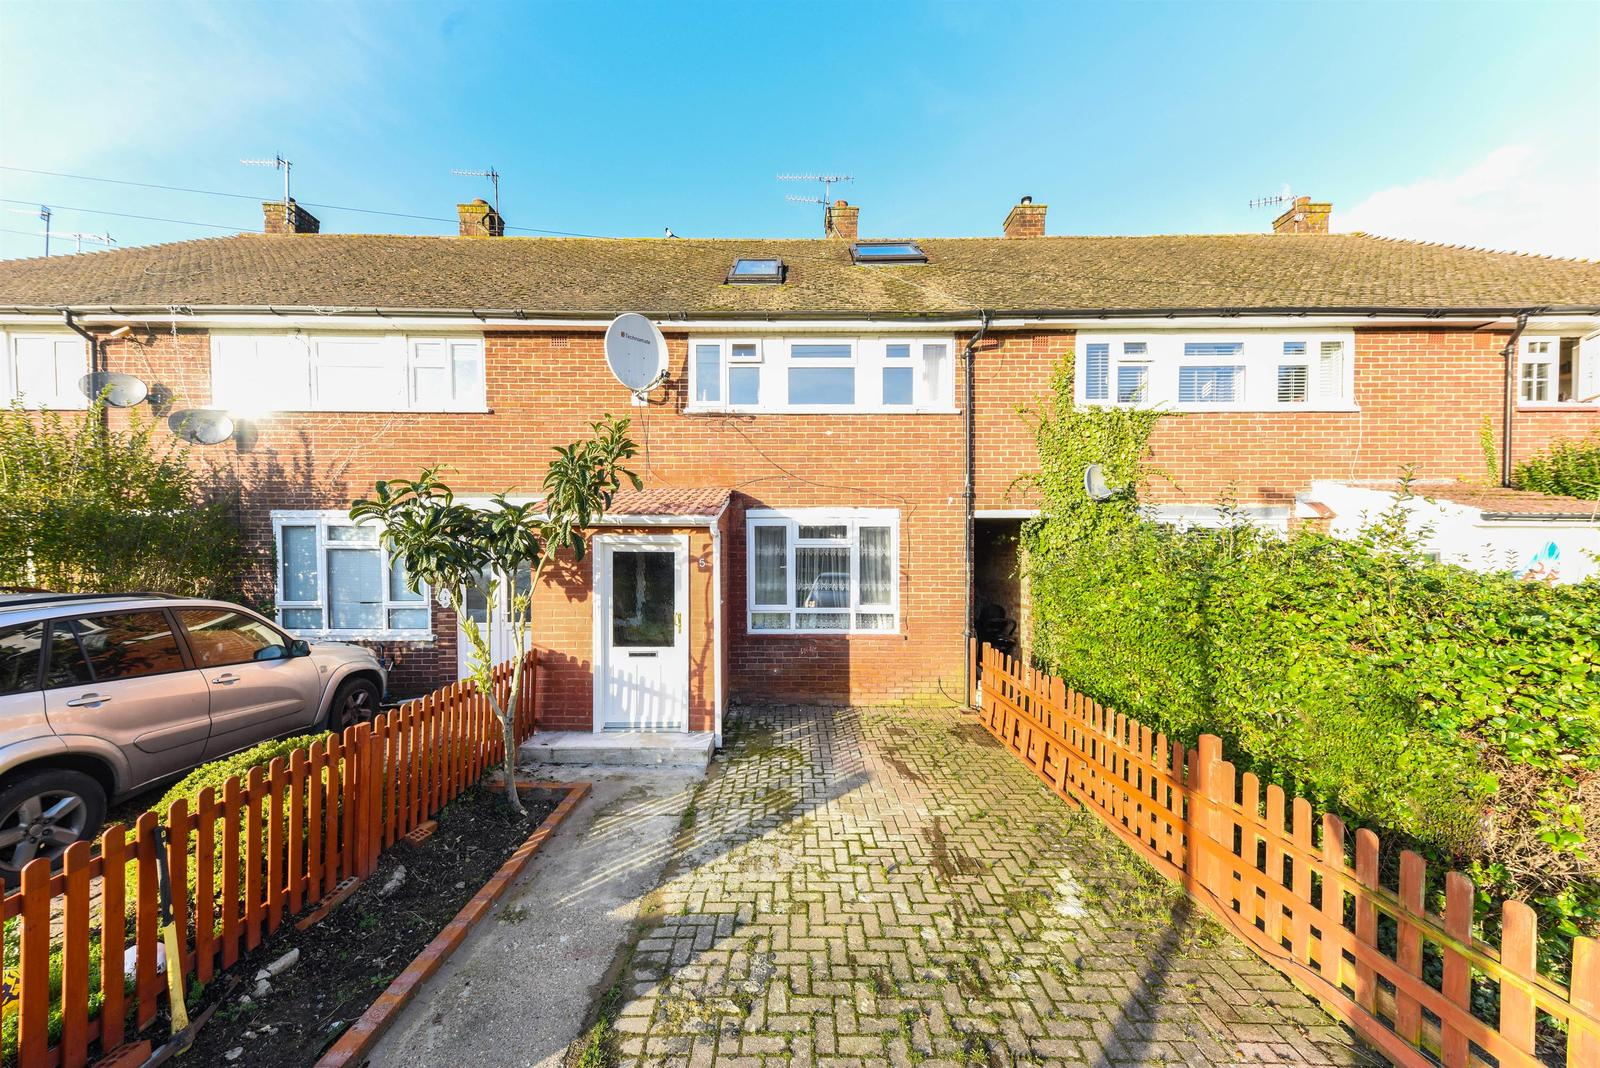 Bletchingley Close, Merstham, Surrey, RH1 3PL Image 1